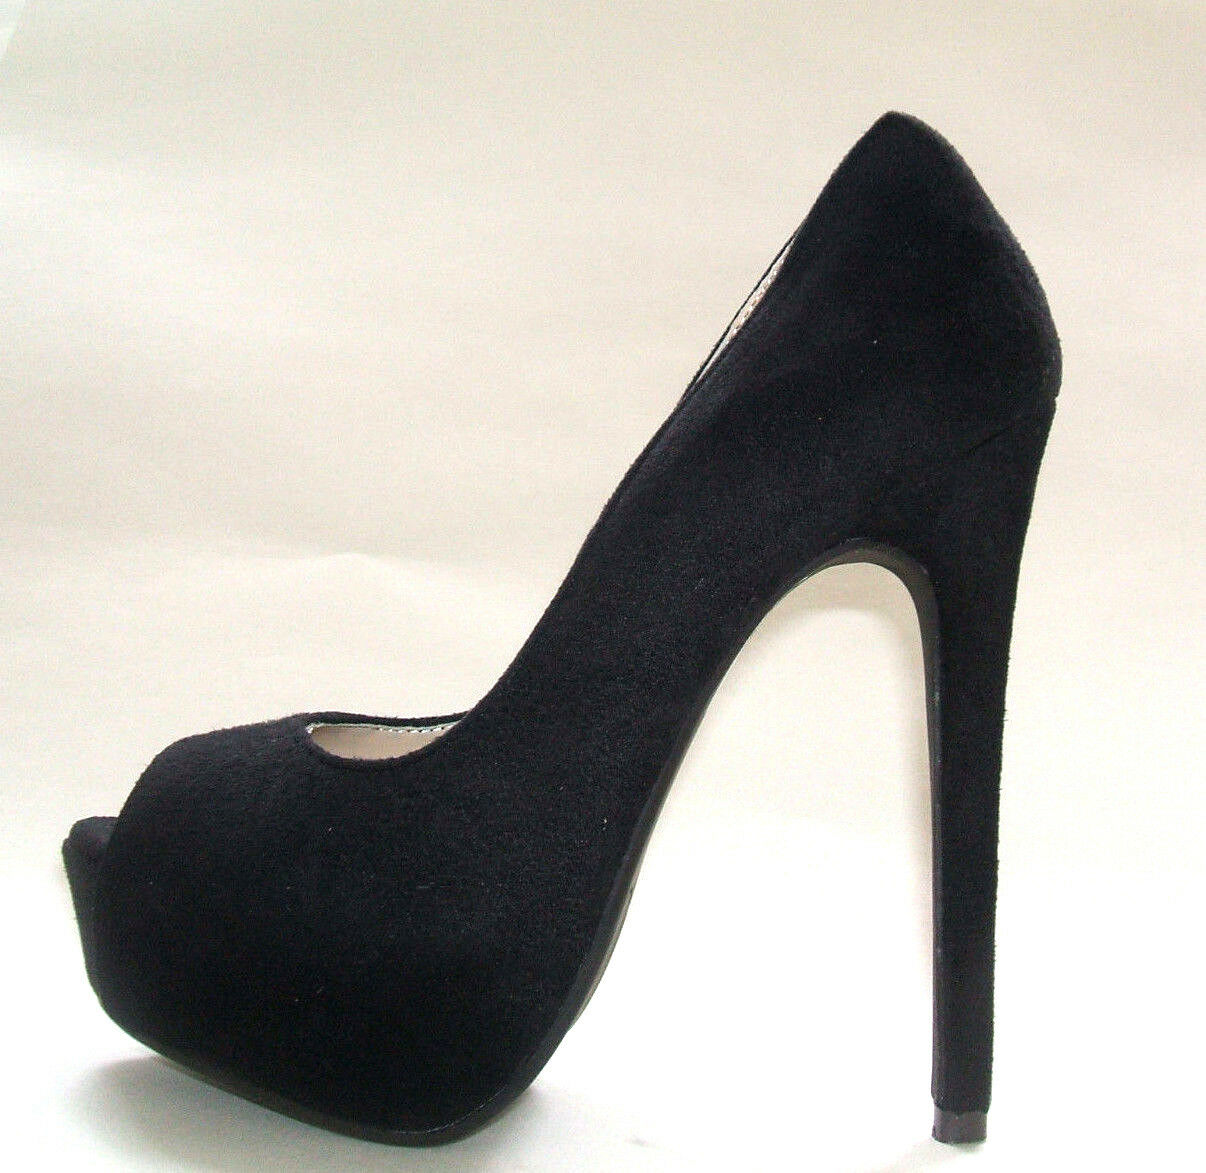 SIZE 3 36 BLACK FAUX SUEDE HIGH HEEL PLATFORM PEEP TOE COURT SHOES BNWB